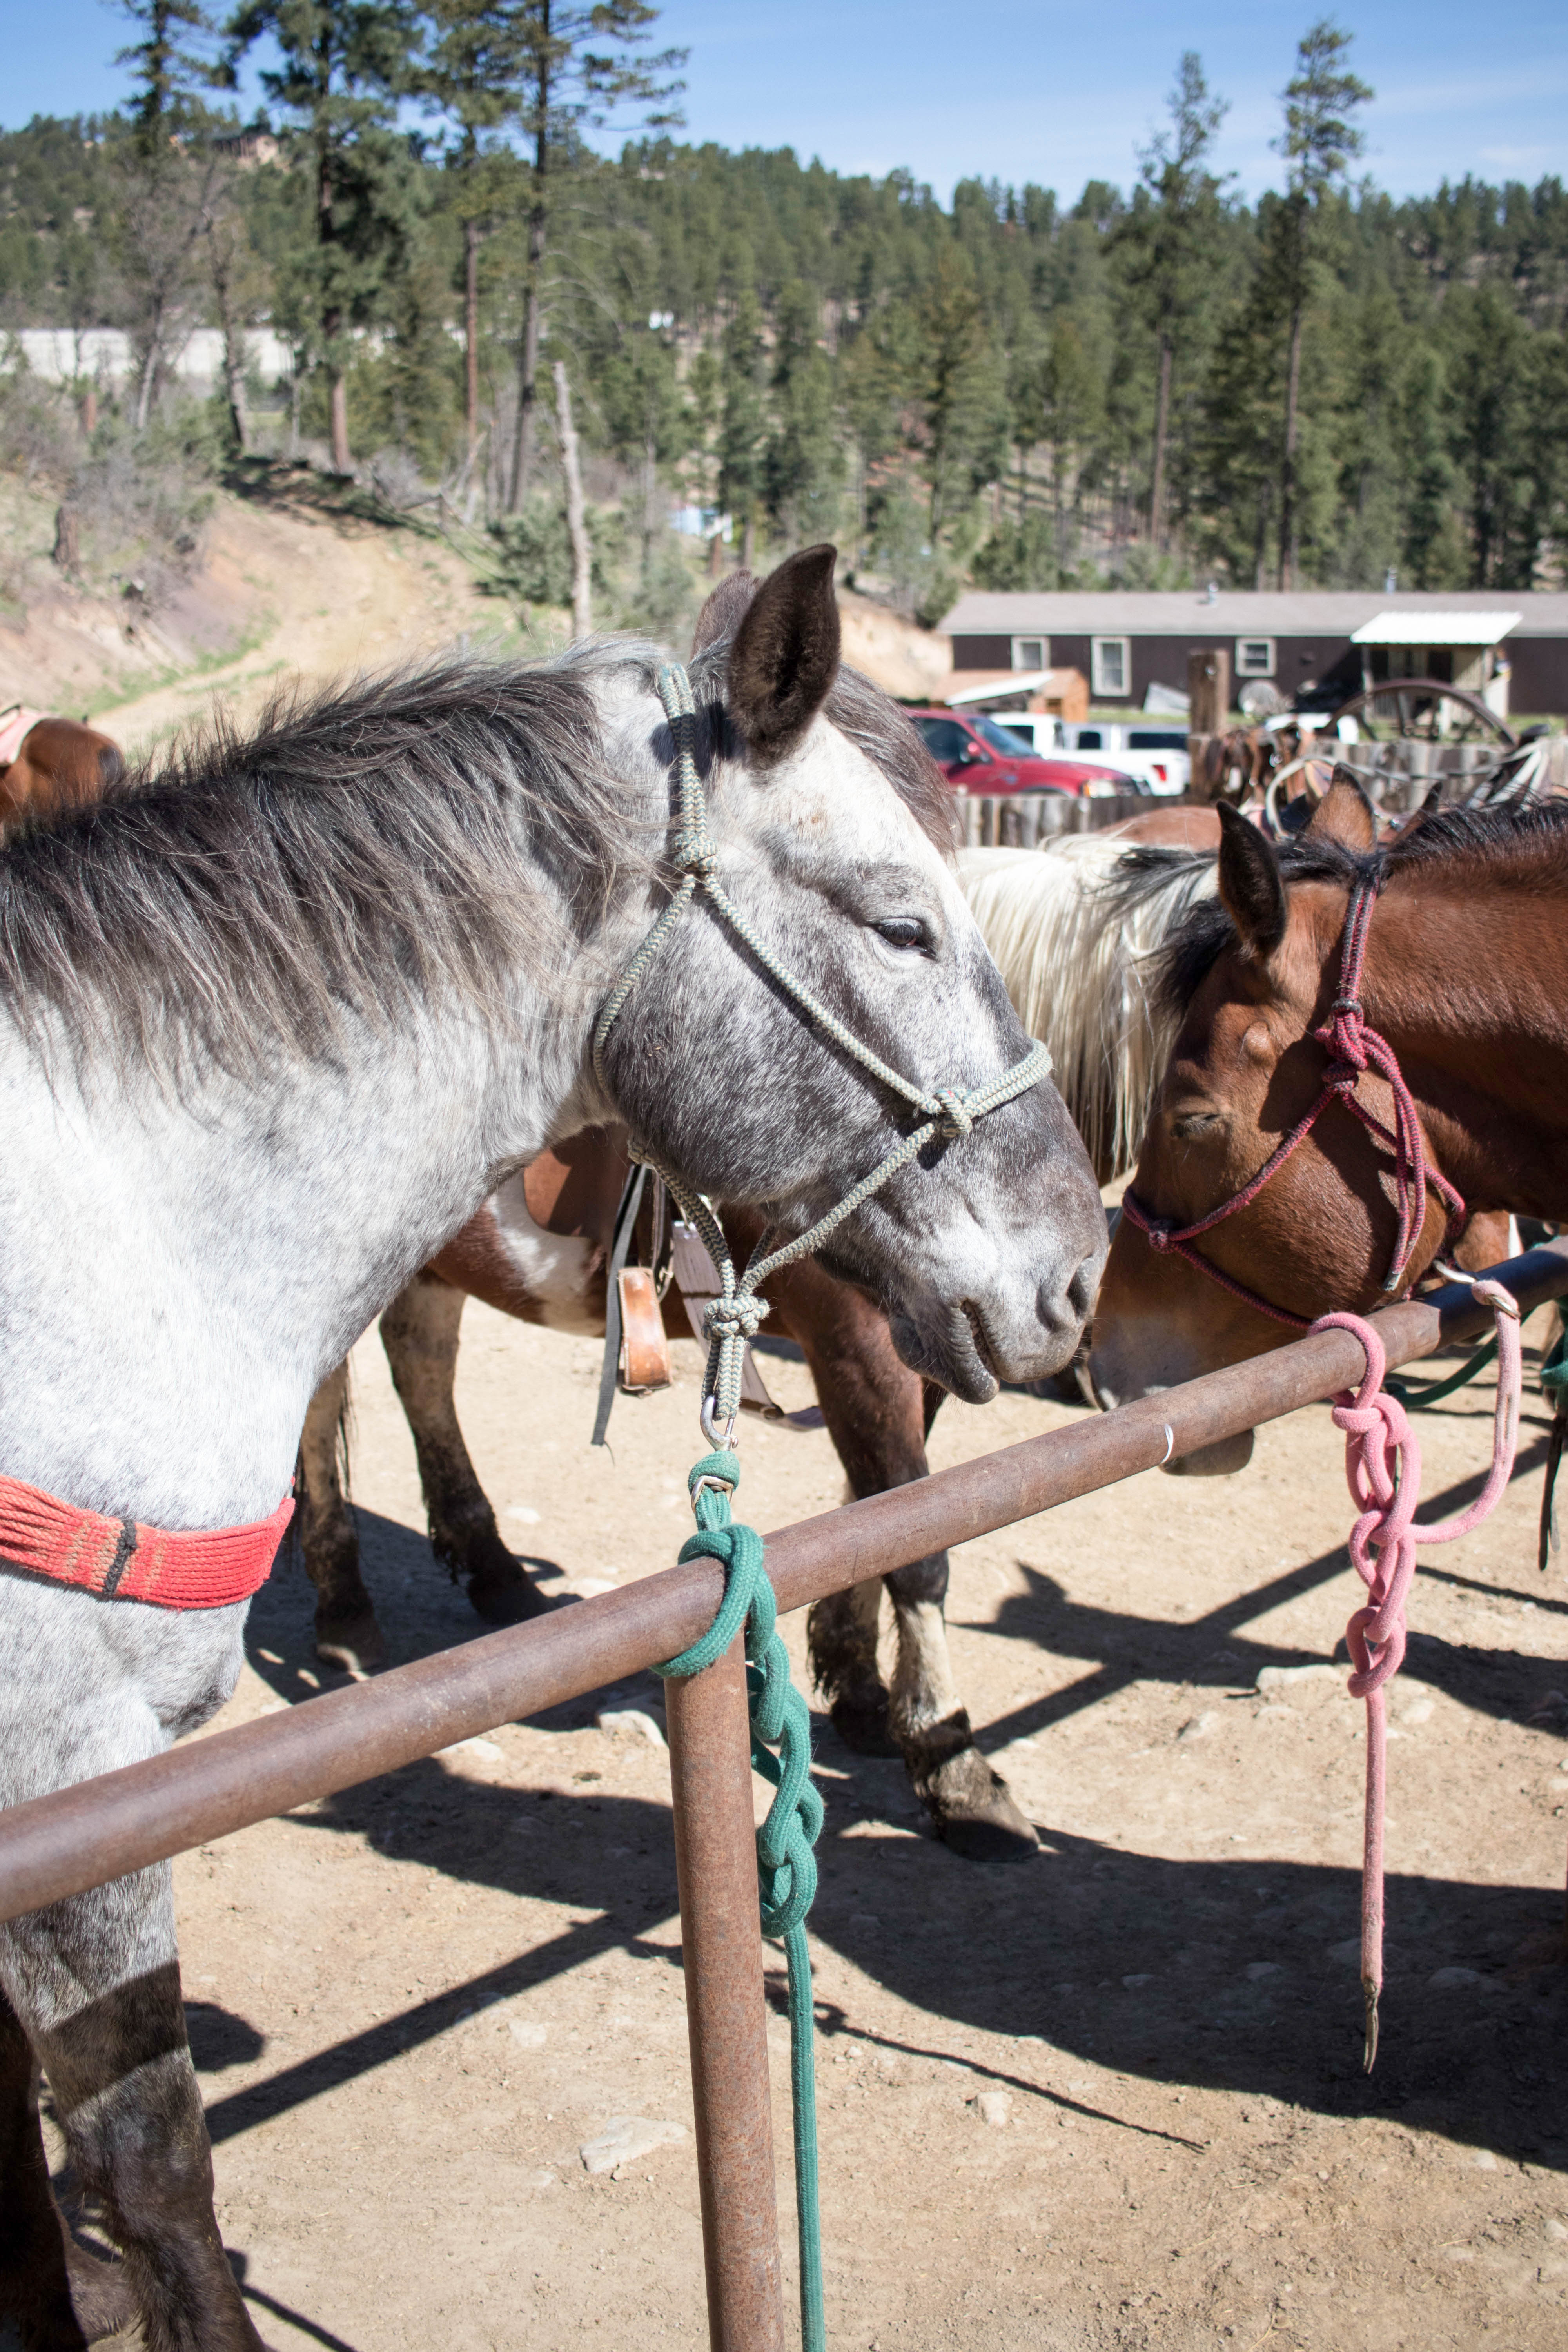 grindstone stables pony rides Ruidoso New Mexico #horses #ponyrides #ruidoso